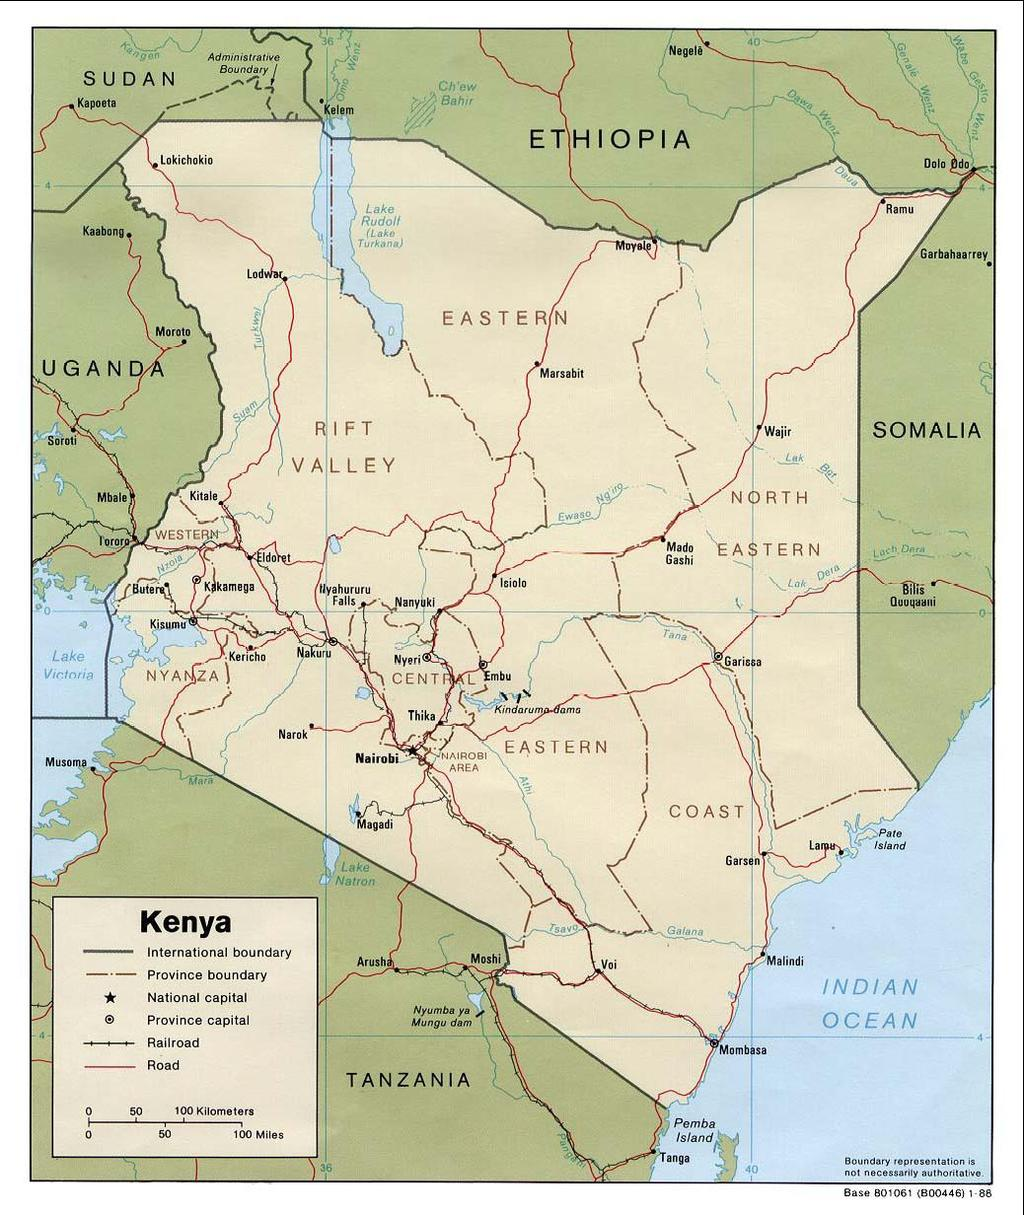 - 38 - Map 1: EPZs with apparel firms (2005) Nairobi: various EPZs, 6 firms (some multiplant) Athi River: 1 EPZ, 7 firms Voi: 1 EPZ,